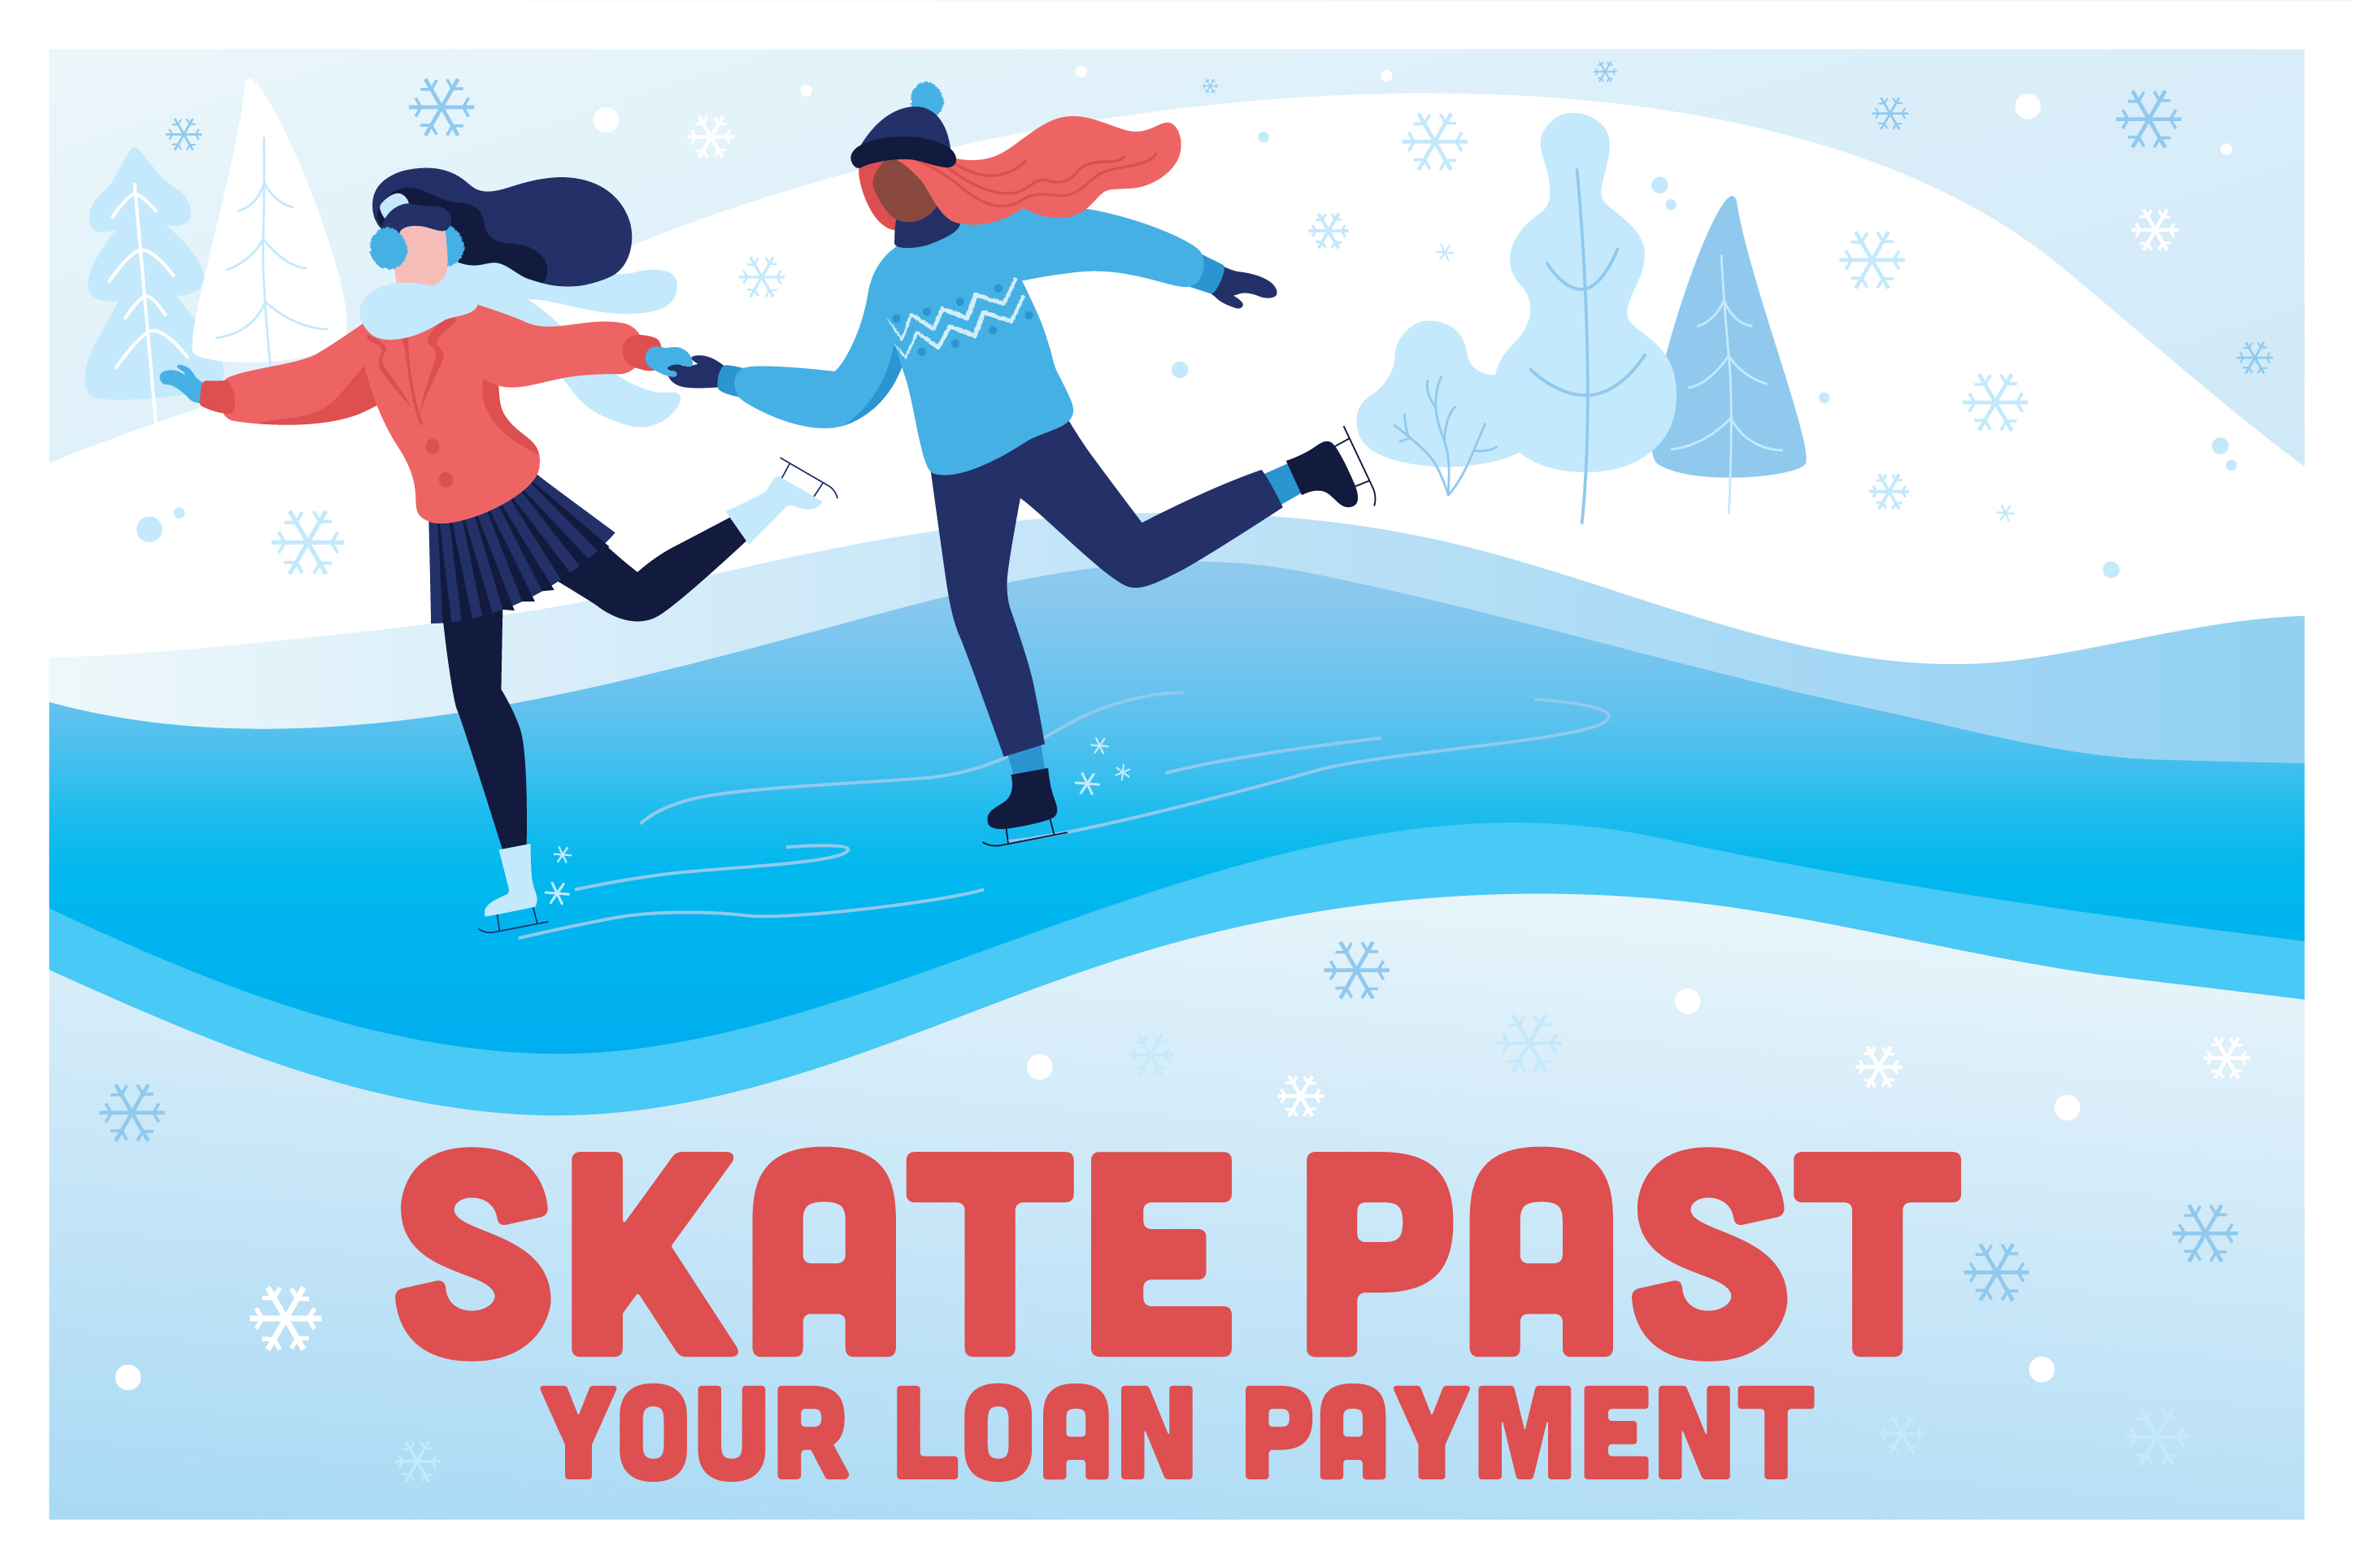 Skate Past Your Loan Payment With Holiday Skip-A-Pay